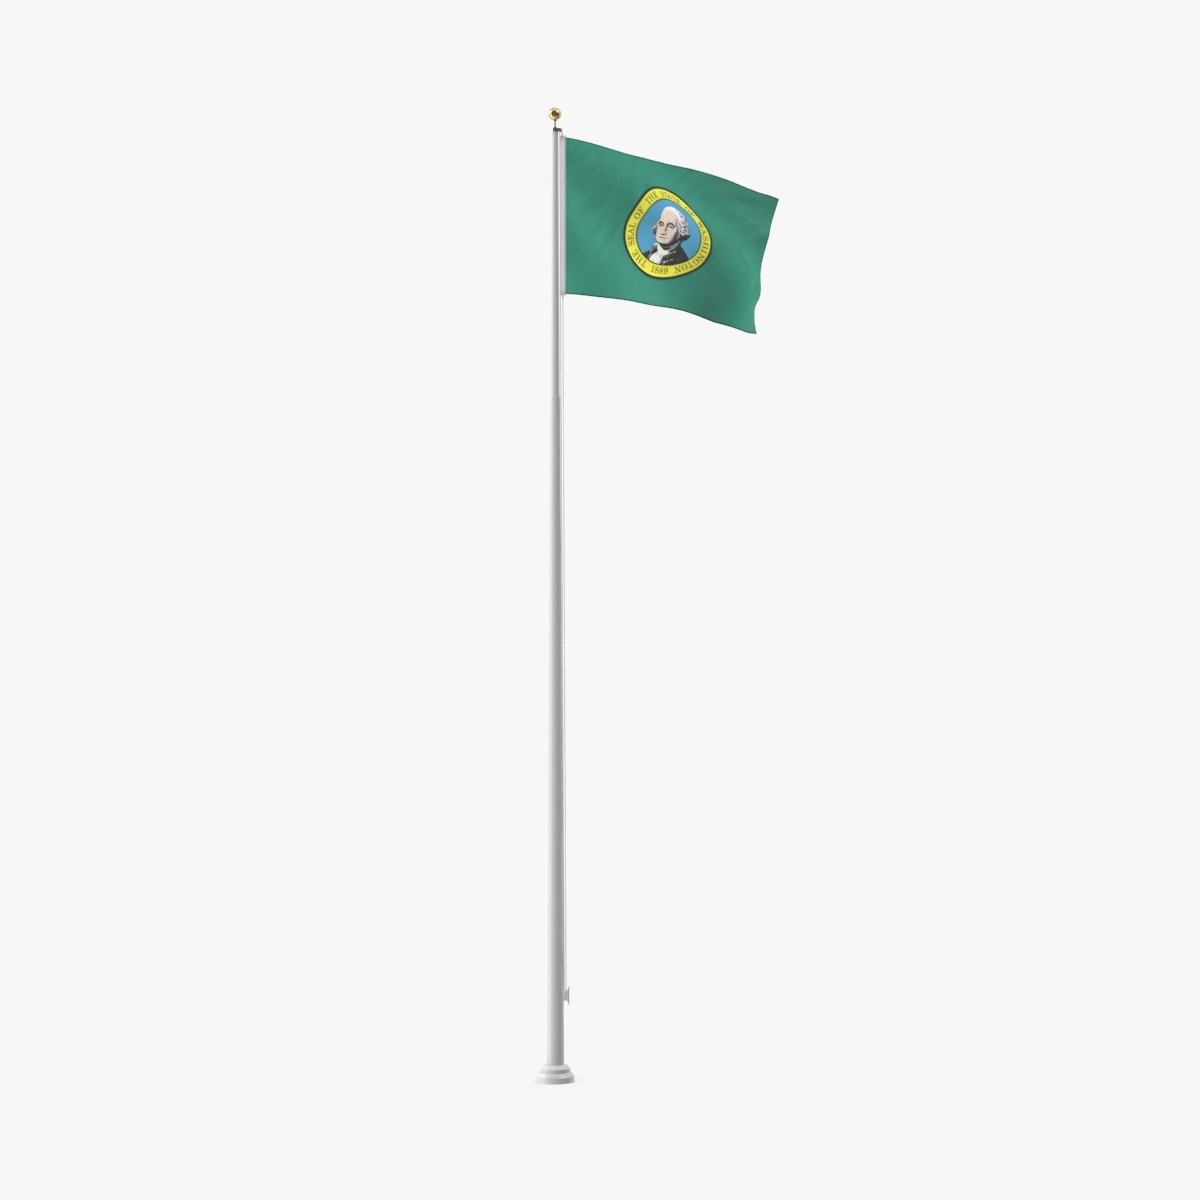 state-flags---washington 3D model